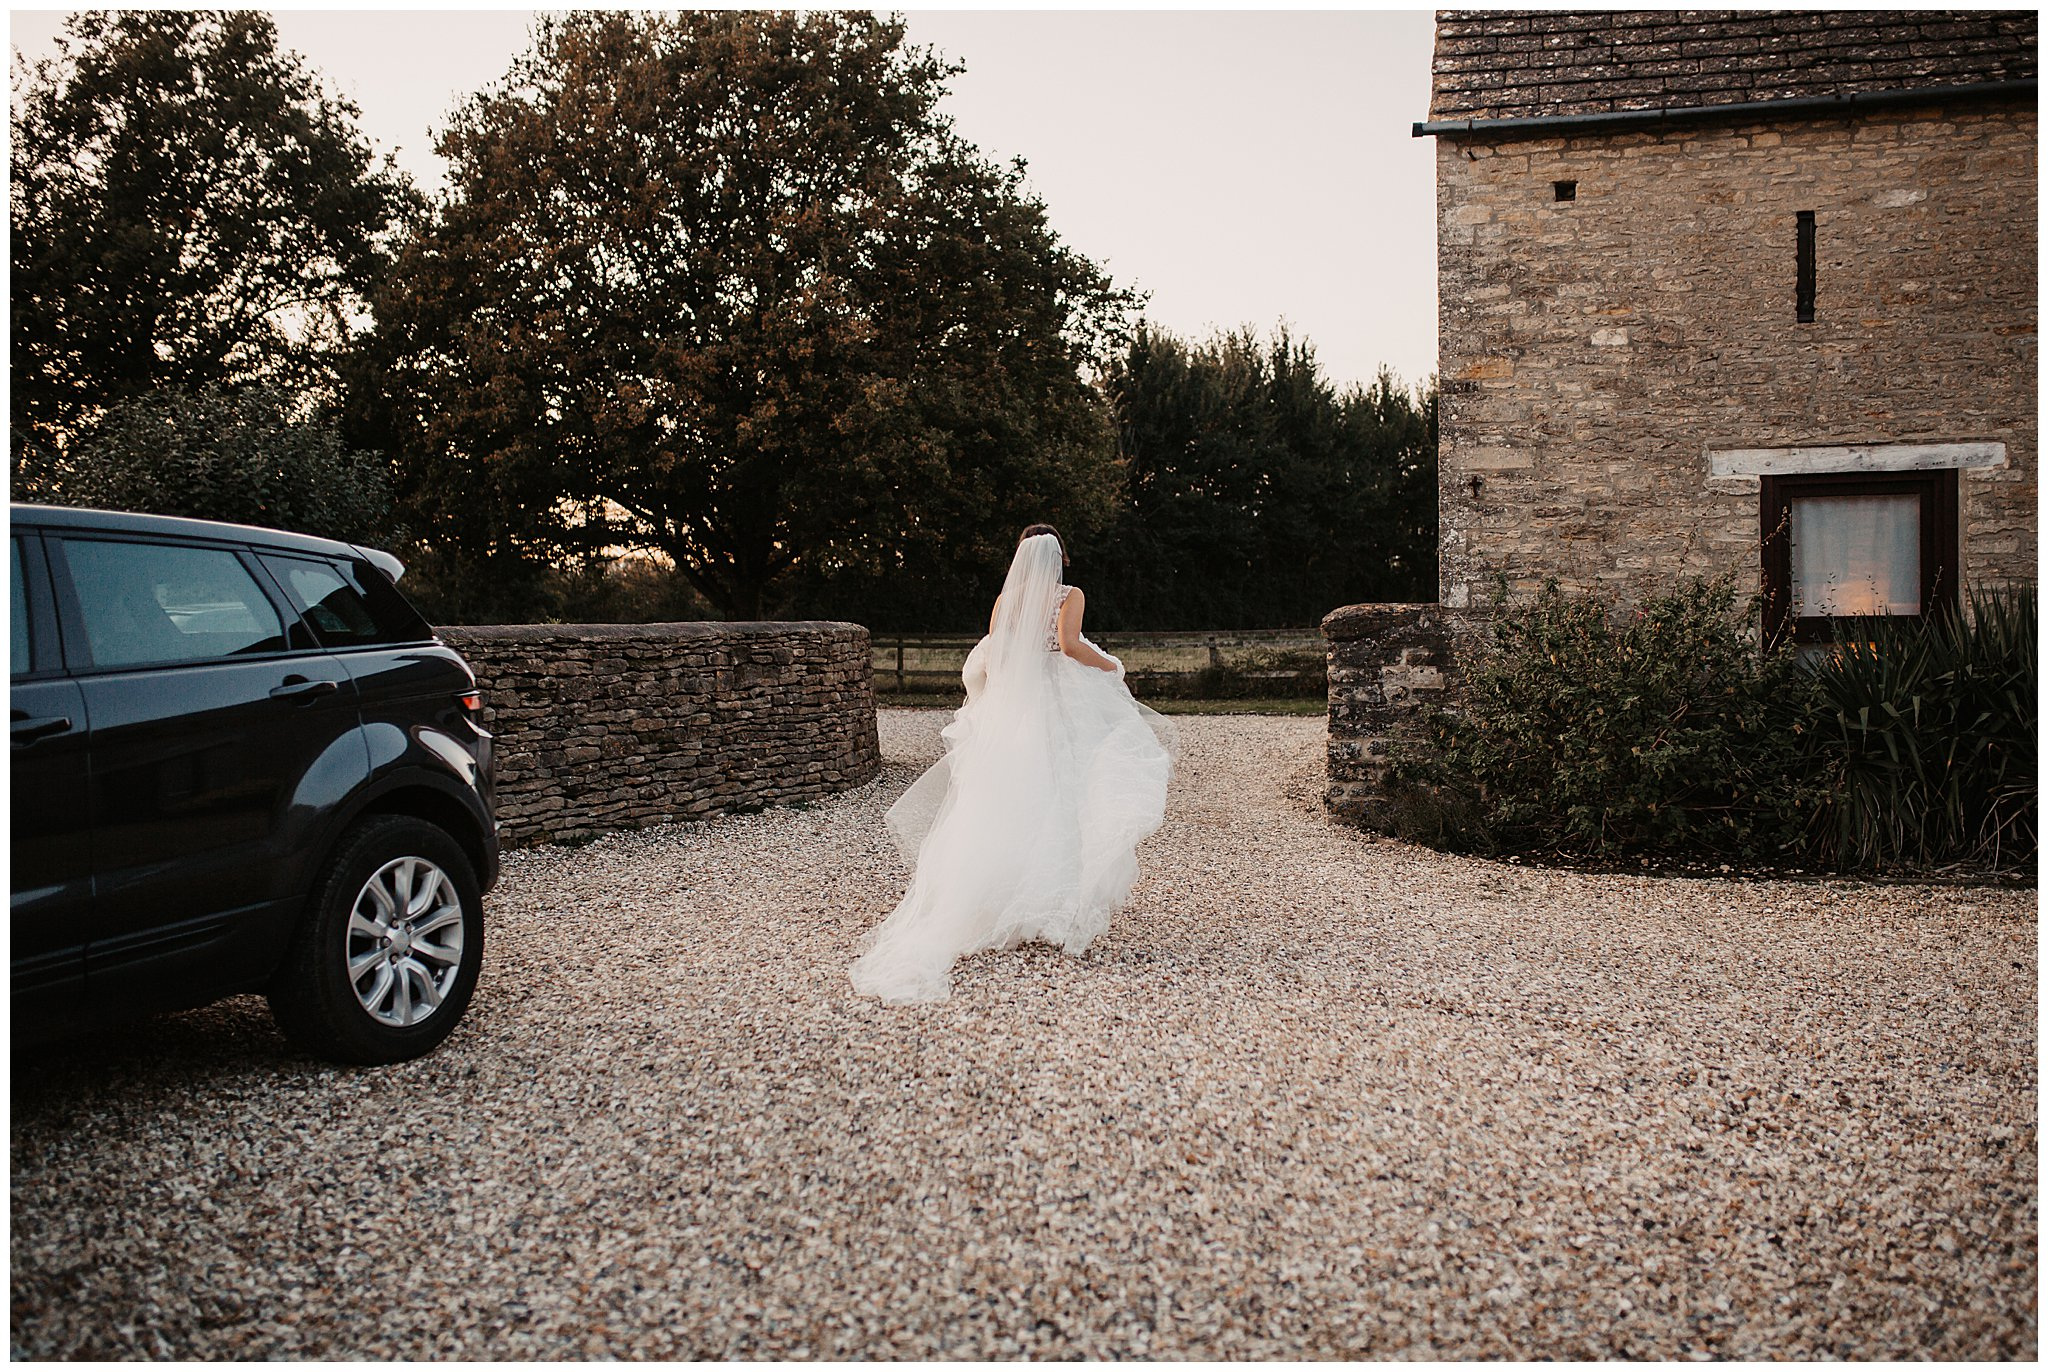 Max & Ksenia Autumnal Wiltshire Wedding-792.jpg